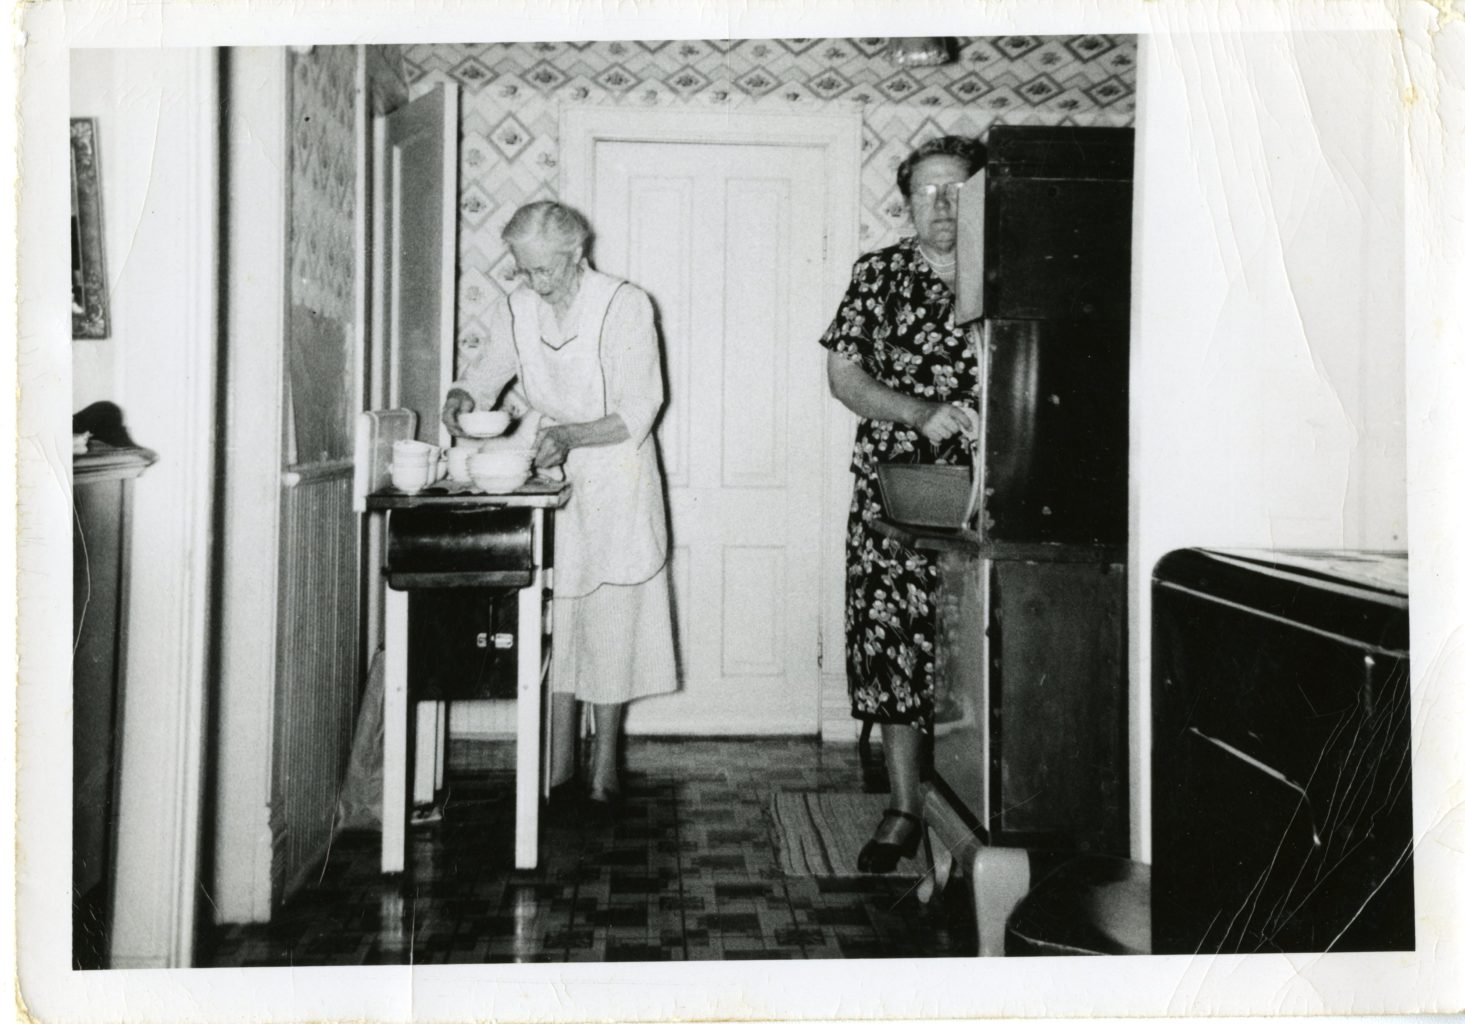 Two women work in the kitchen.